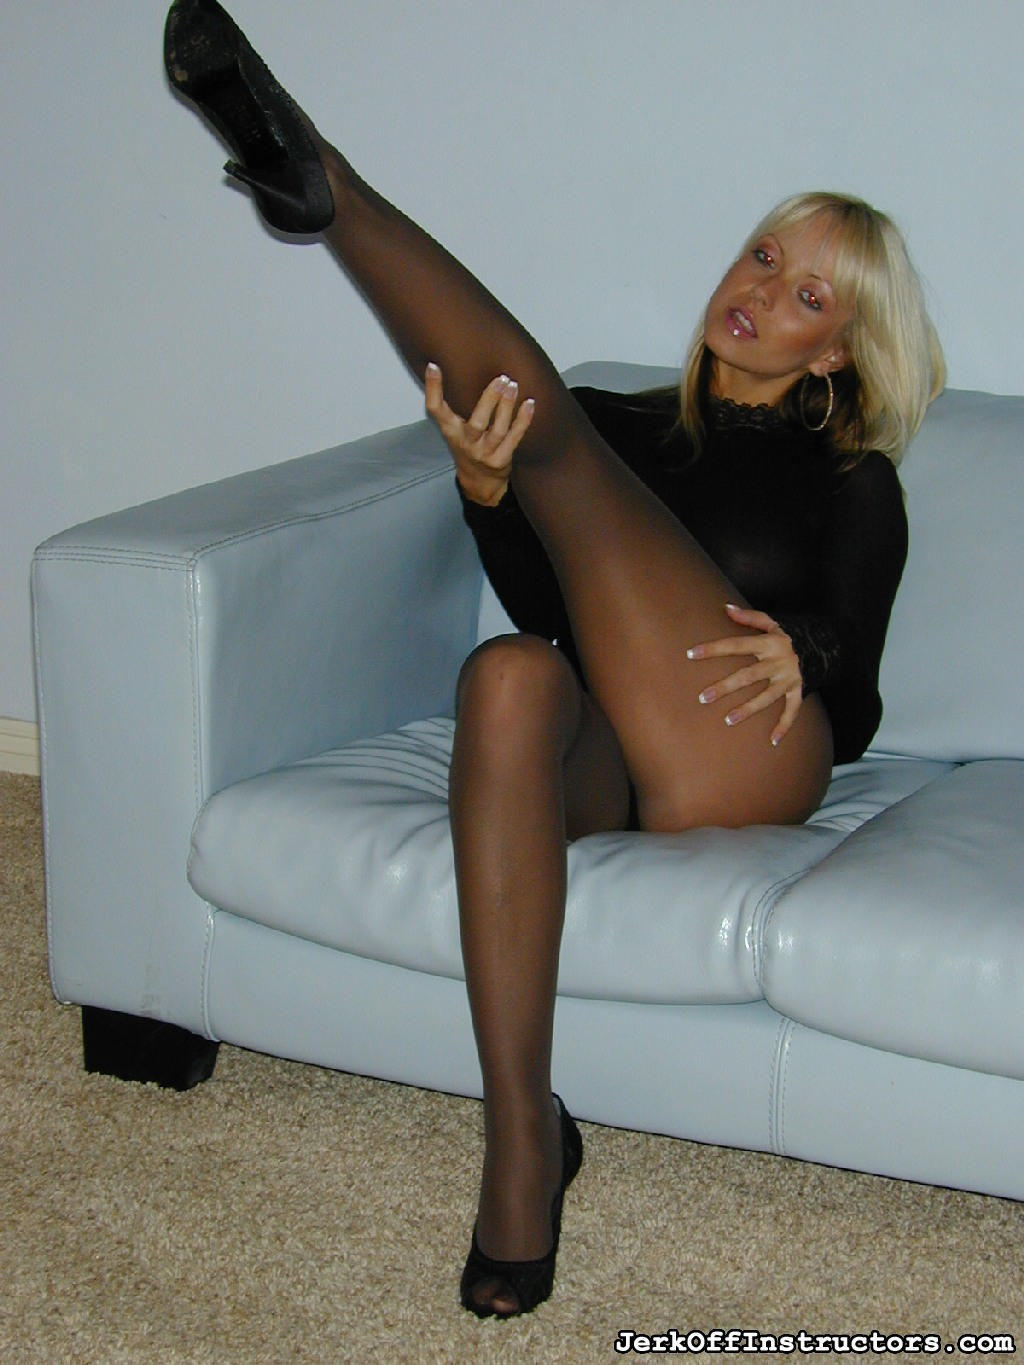 "Little cock 60  in a black body suit and black pantyhose jana cova towers over you quotare you playing with your little cockquot she teases. In a black anatomy suit and black pantyhose, Jana Cova towers over you, ""Are you playing with your little dick?"" She teases."